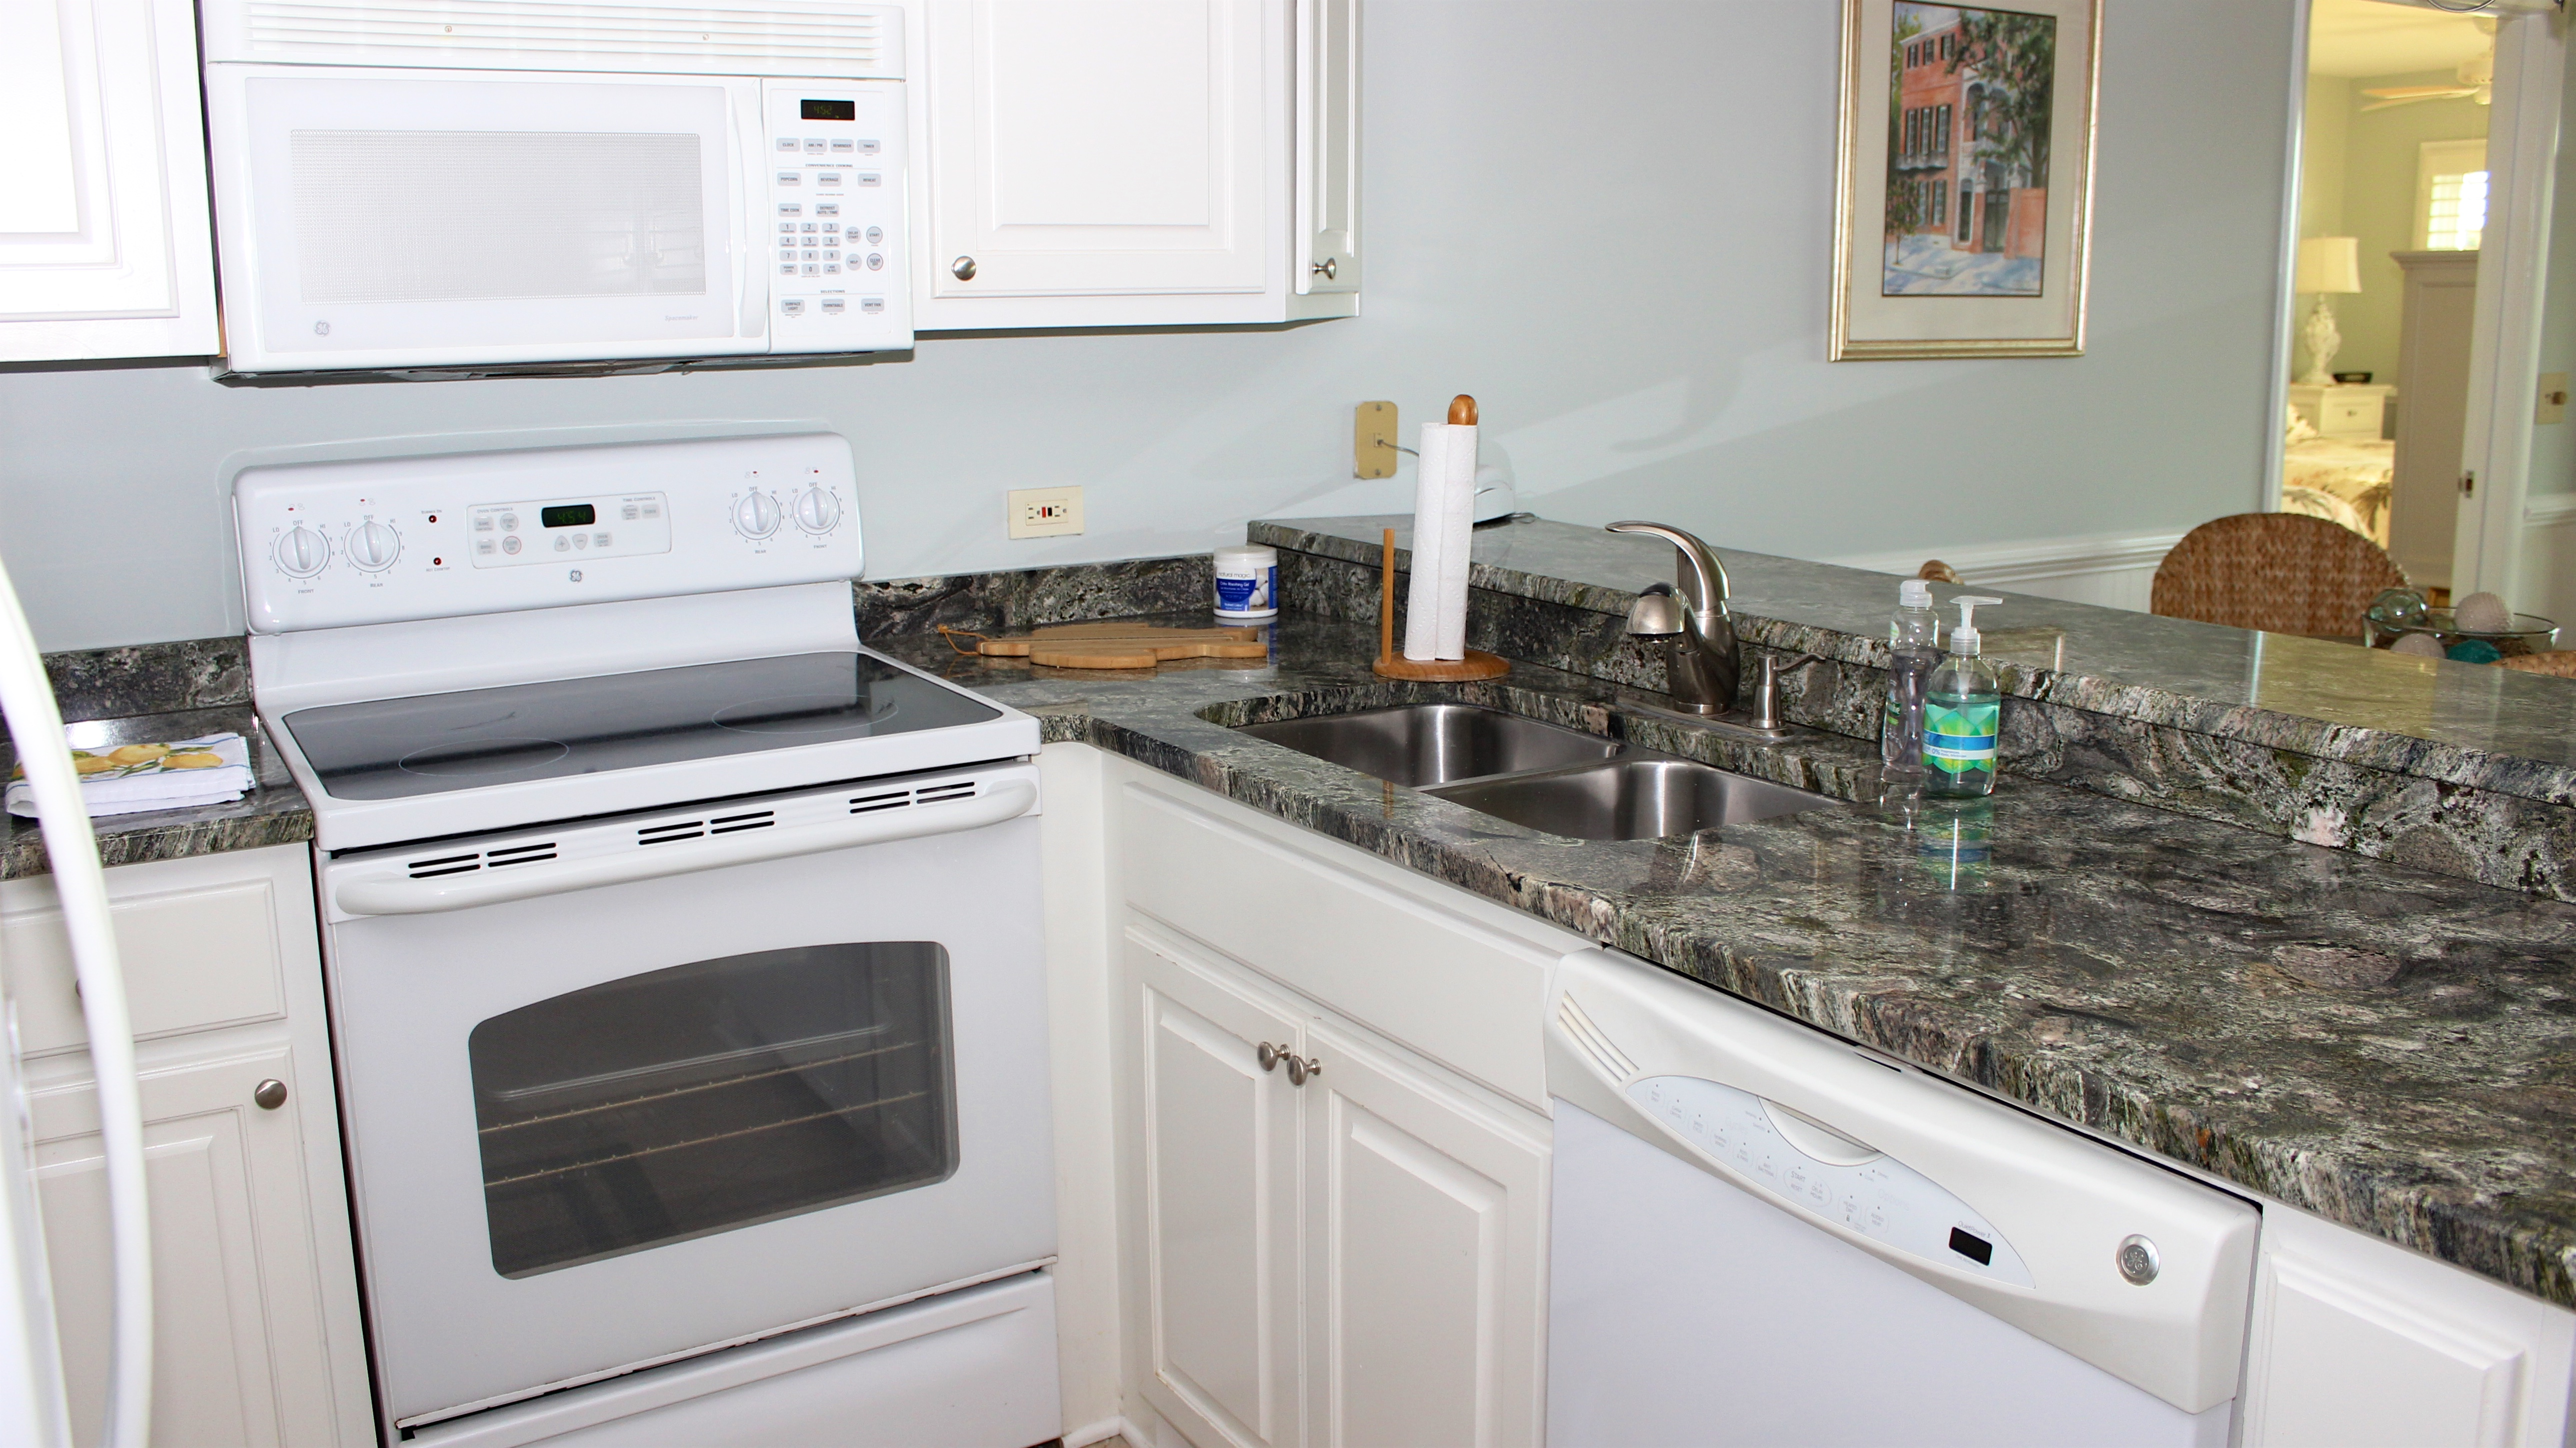 The soft green granite counters are a beautiful accent to the white cabinetry.